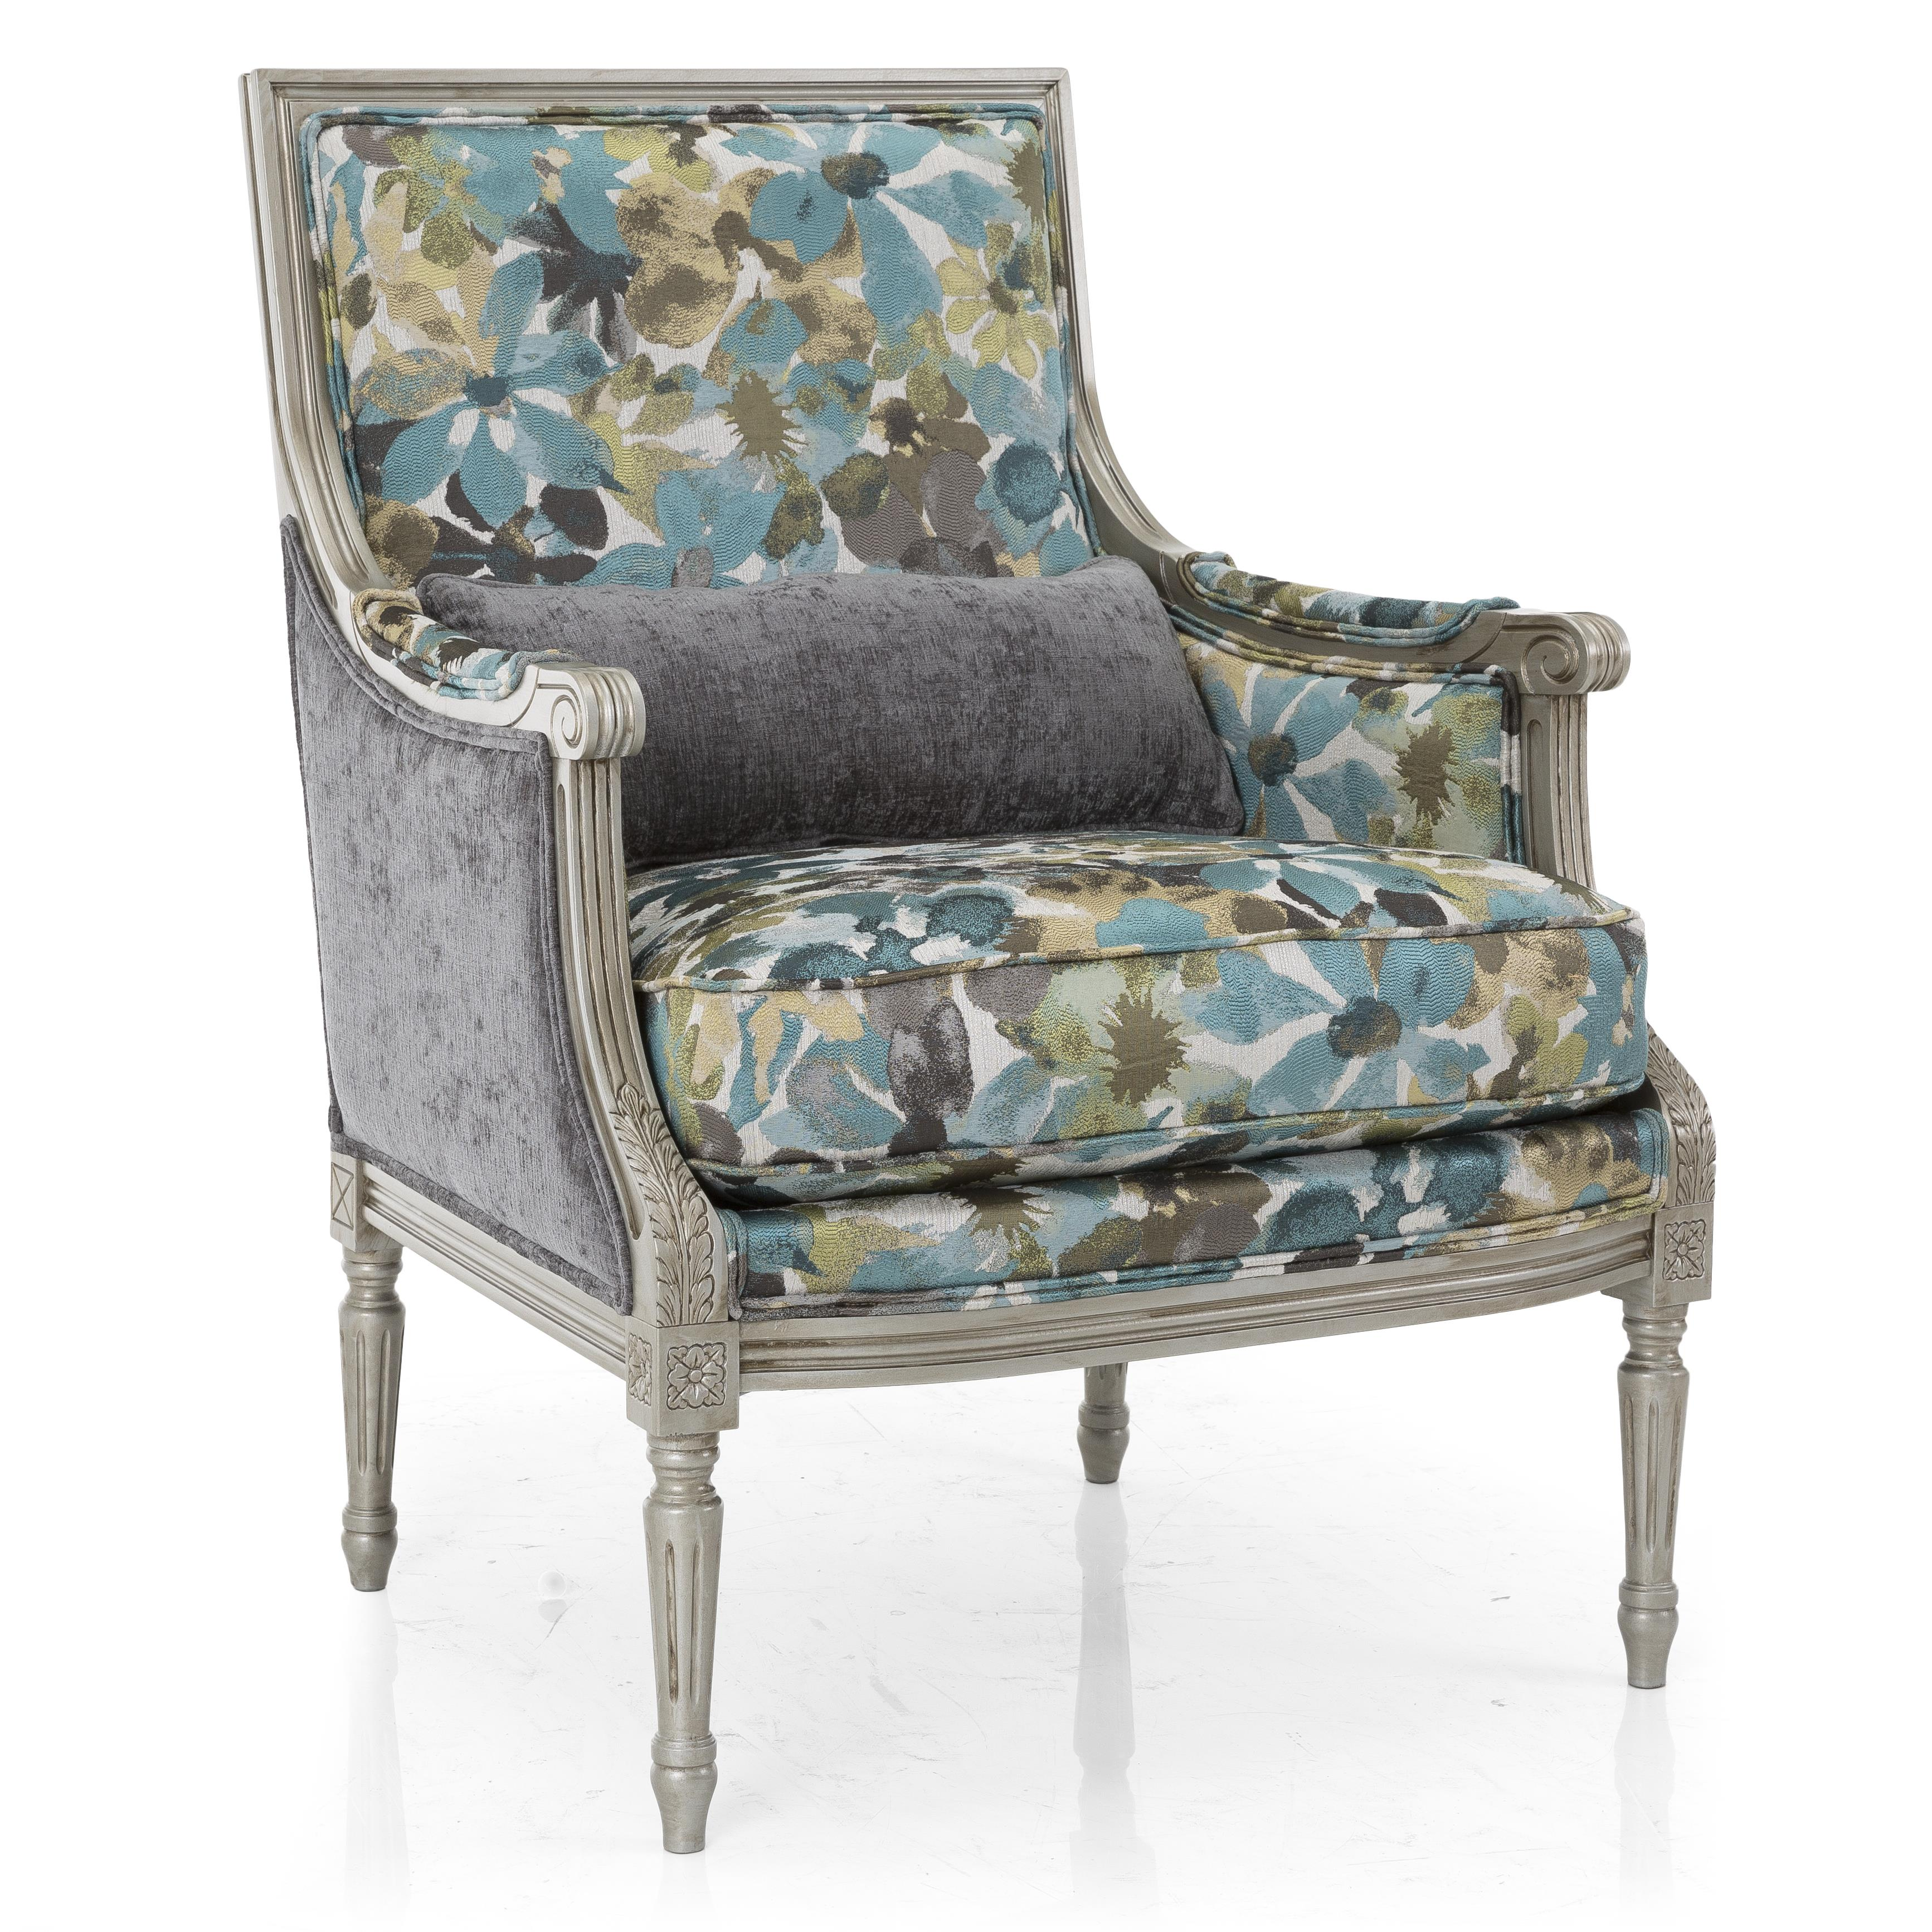 blue floral chair massage cozzia taelor designs accent chairs firenze with exposed